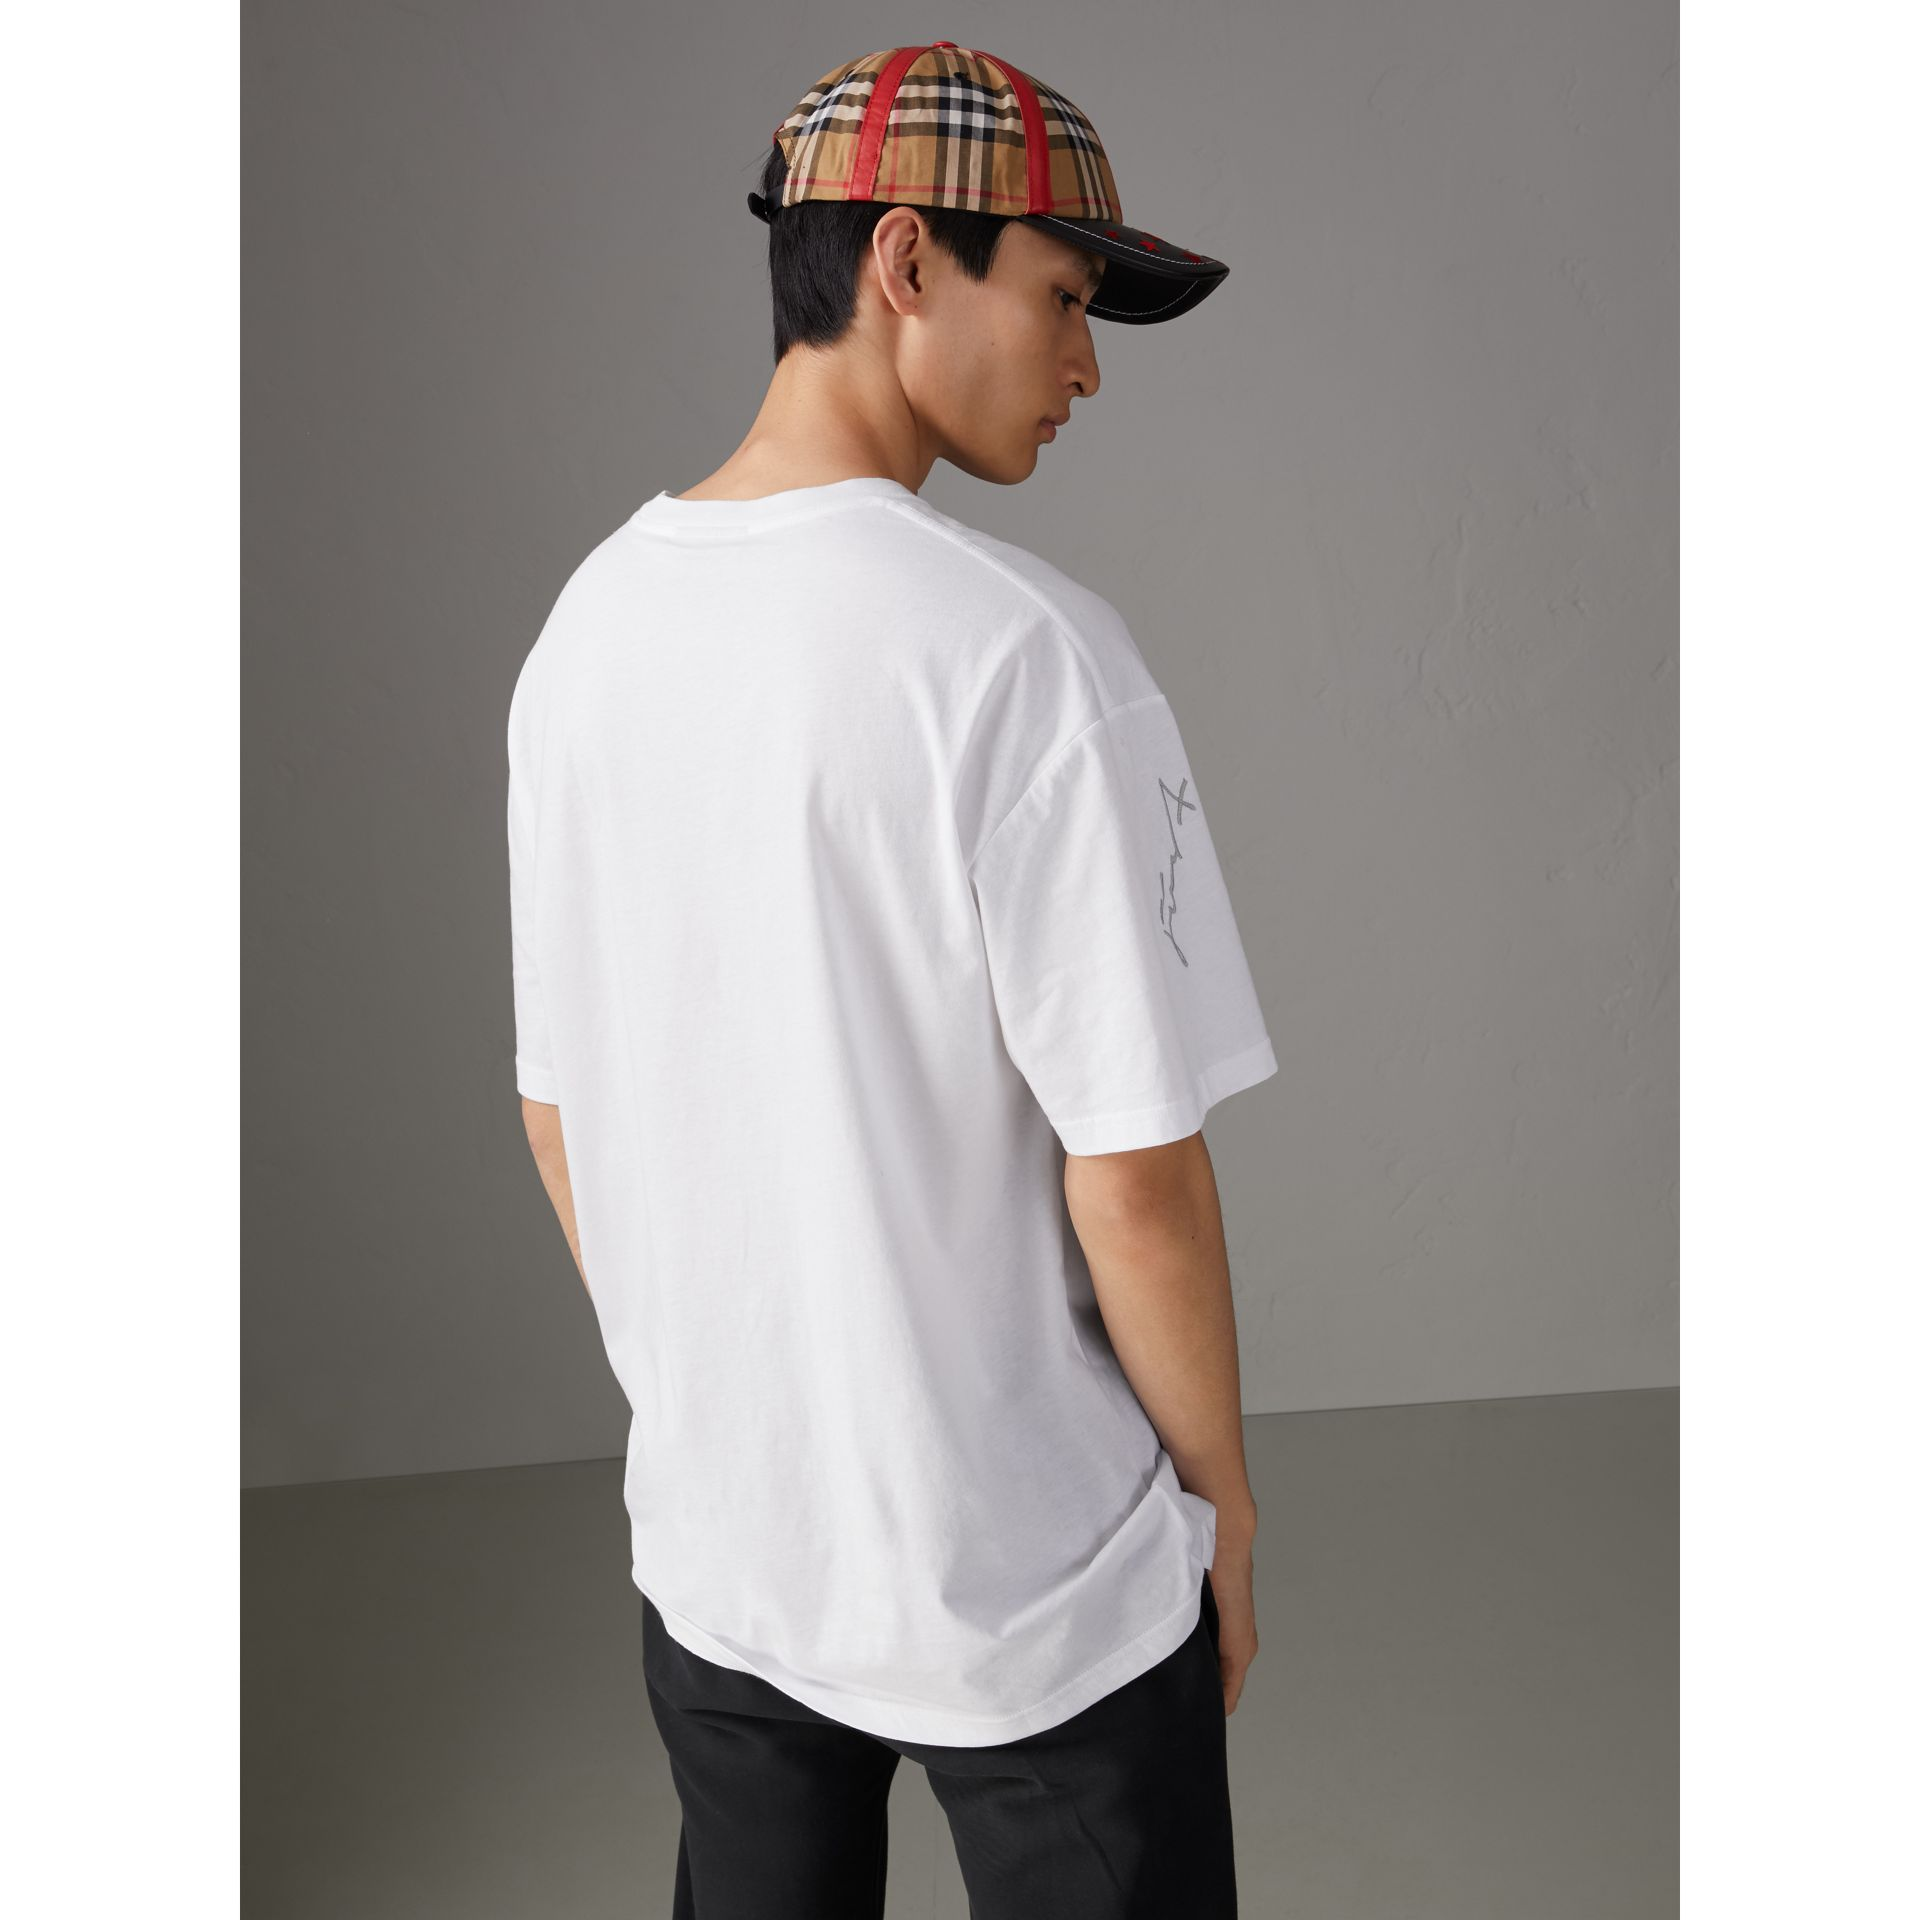 Burberry x Kris Wu Printed Cotton T-shirt in White - Men | Burberry United States - gallery image 2